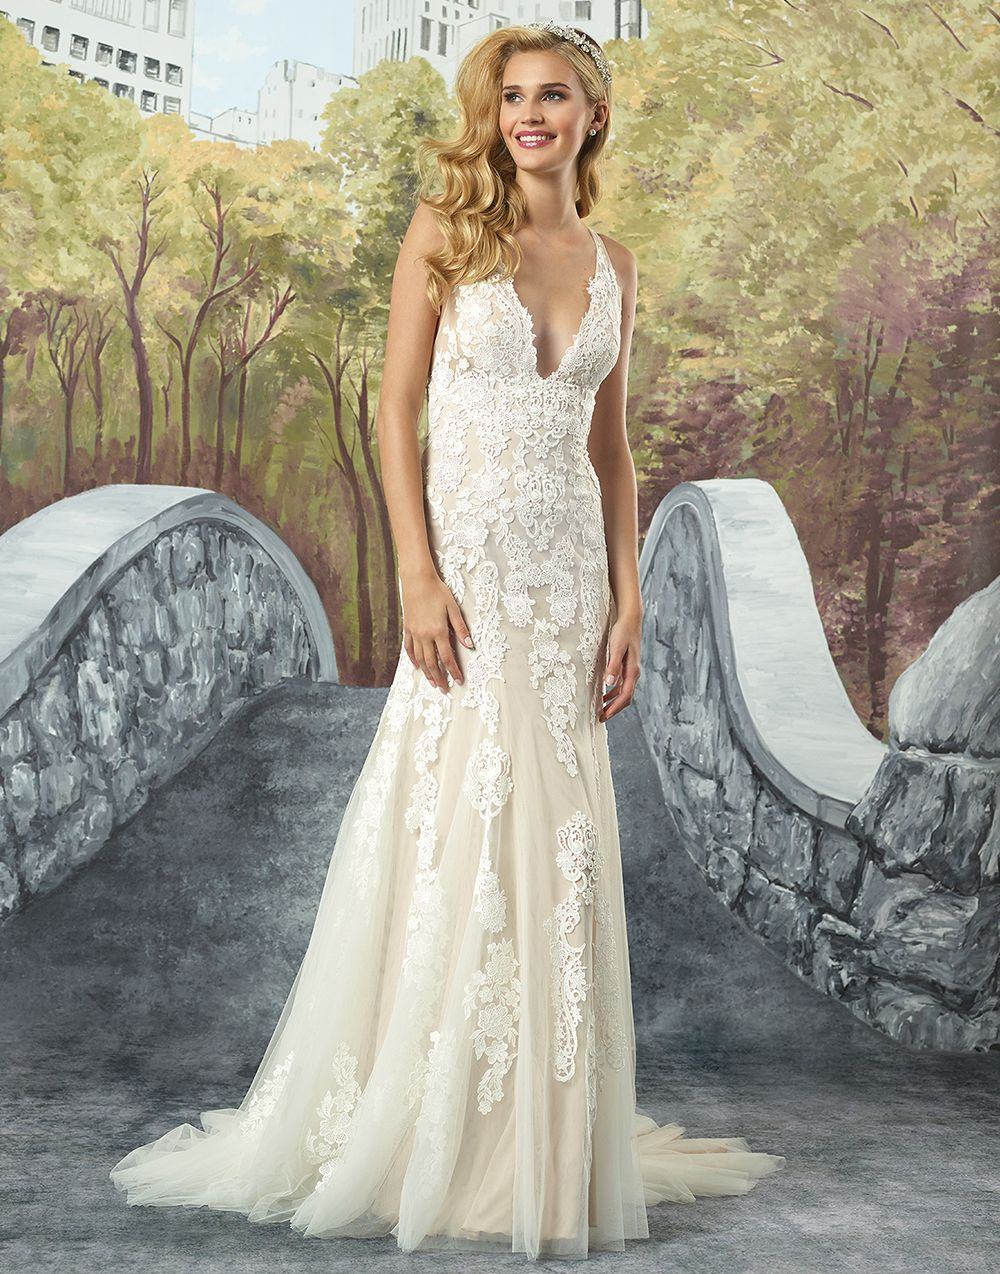 Justin Alexander wedding dresses style 8919 | Bridal gowns, Gowns ...